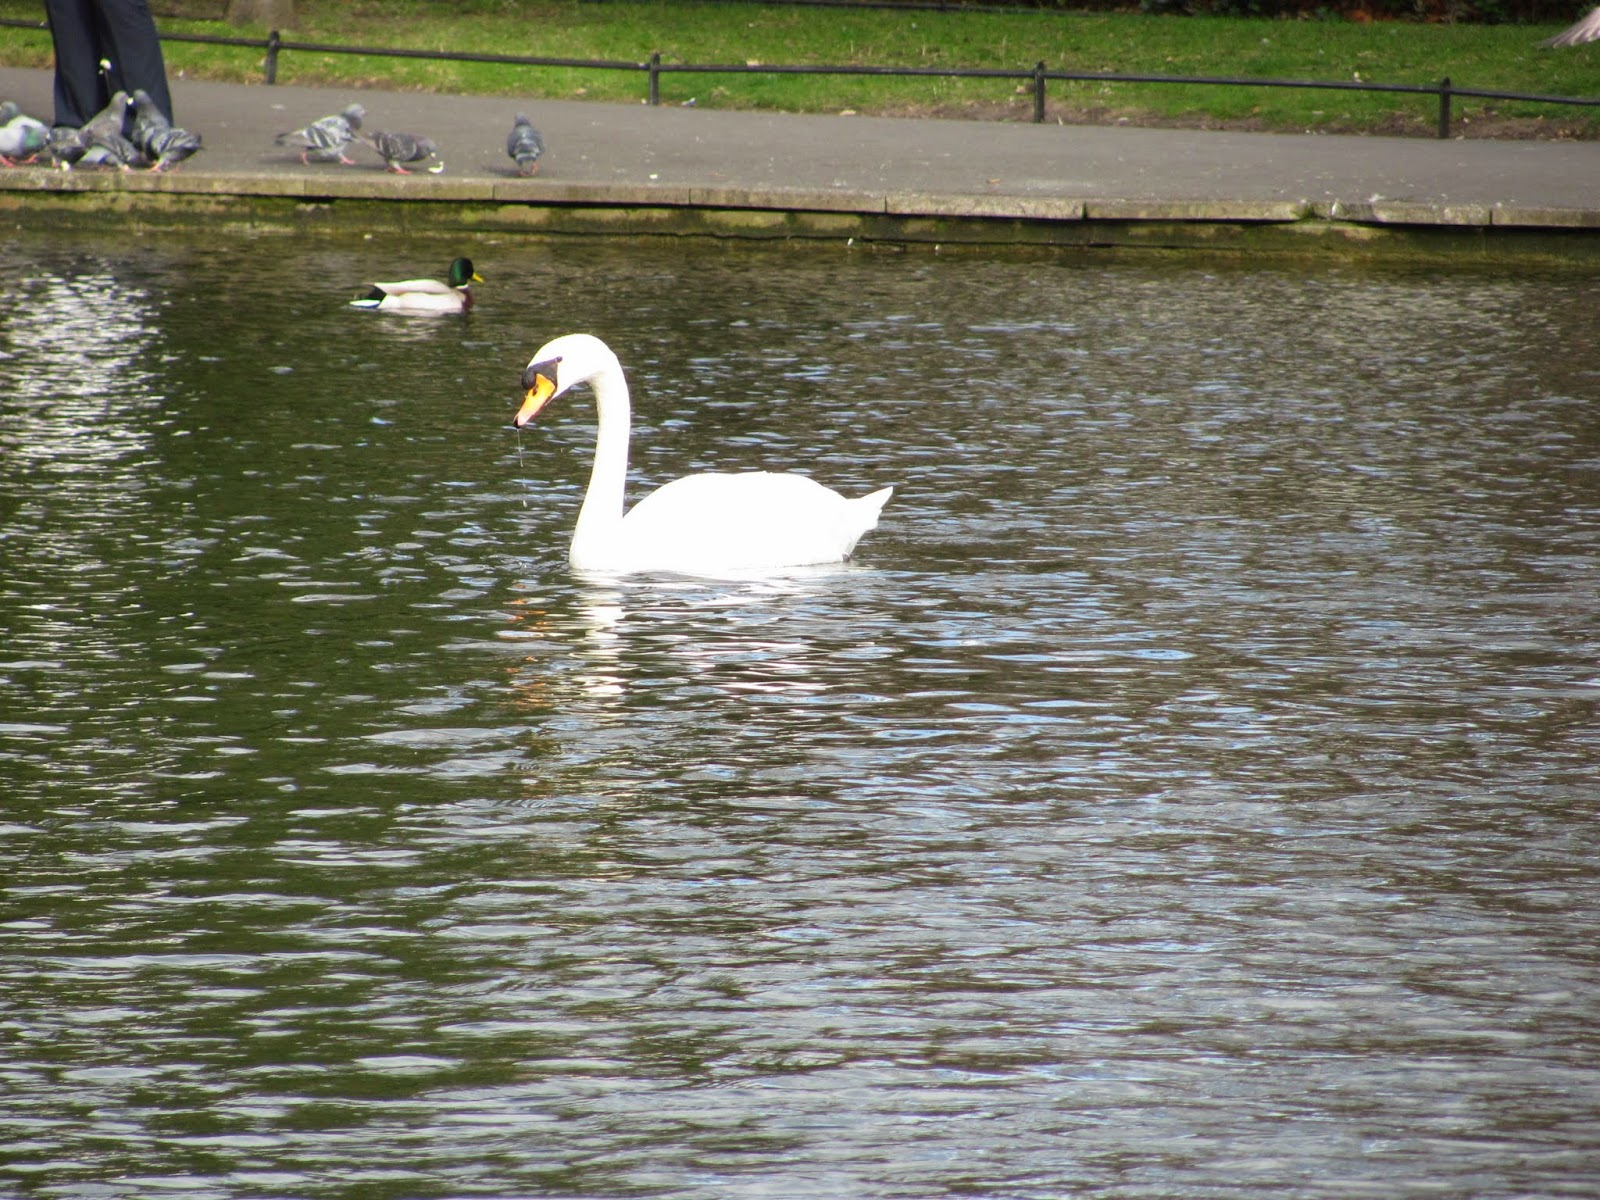 Swan at St. Stephen's Green Dublin, Ireland